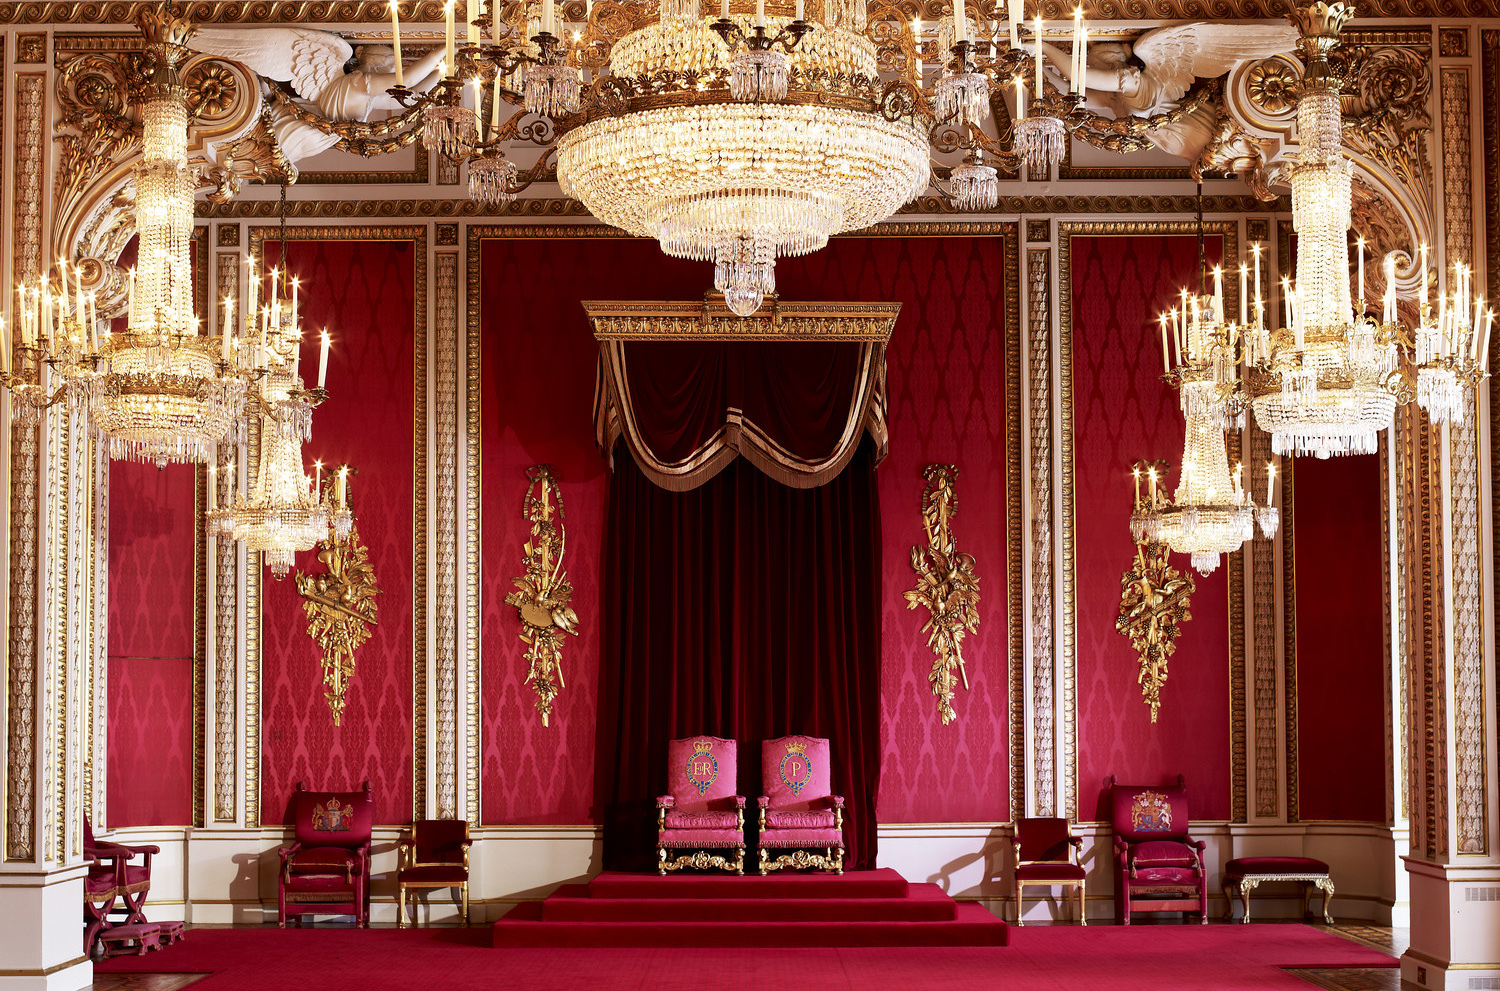 Check out the inside of Buckingham Palace and the Royal Collection